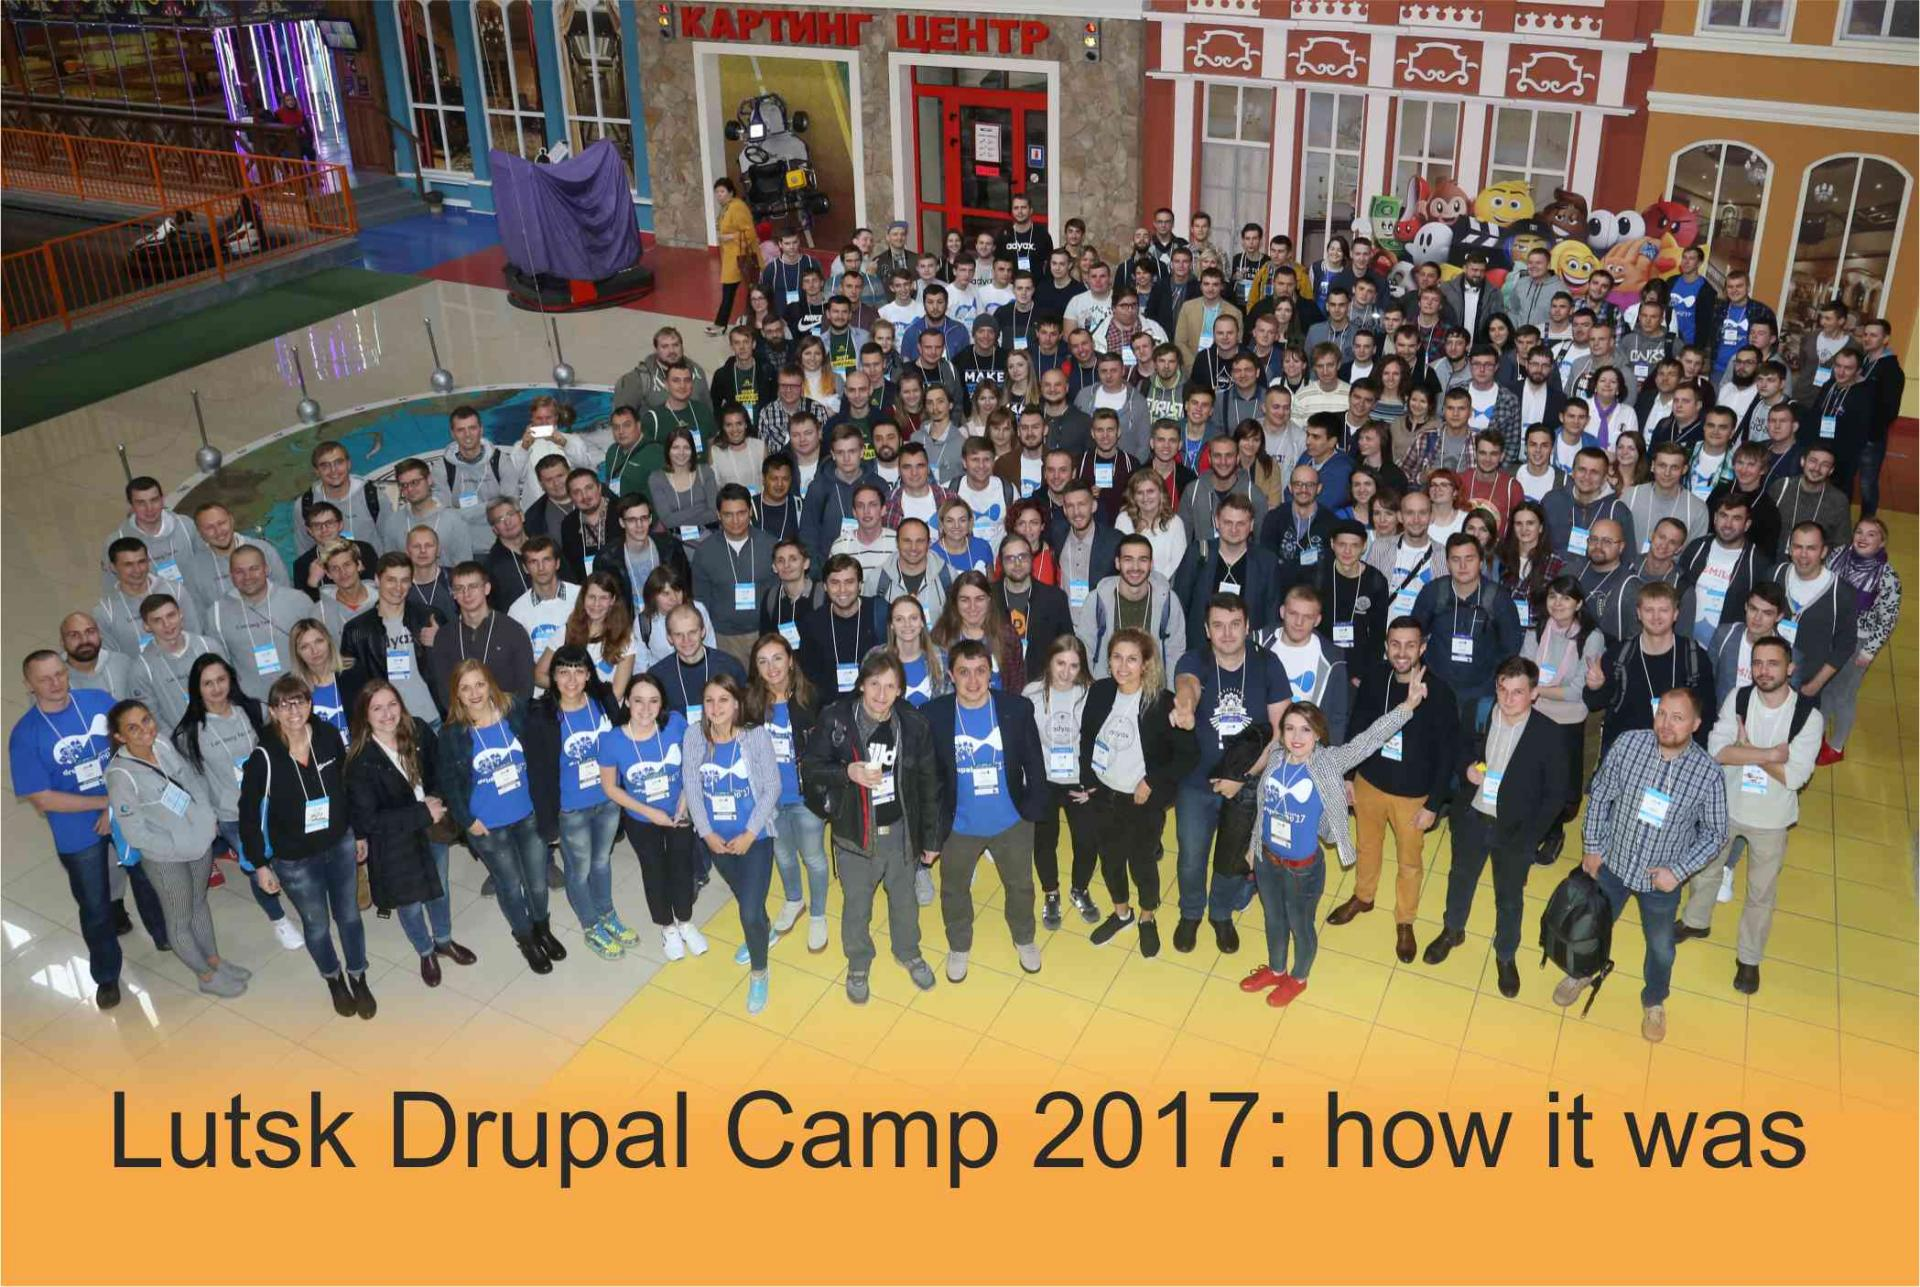 Intellect, fire, water, and medieval castles at Lutsk Drupal Camp 2017